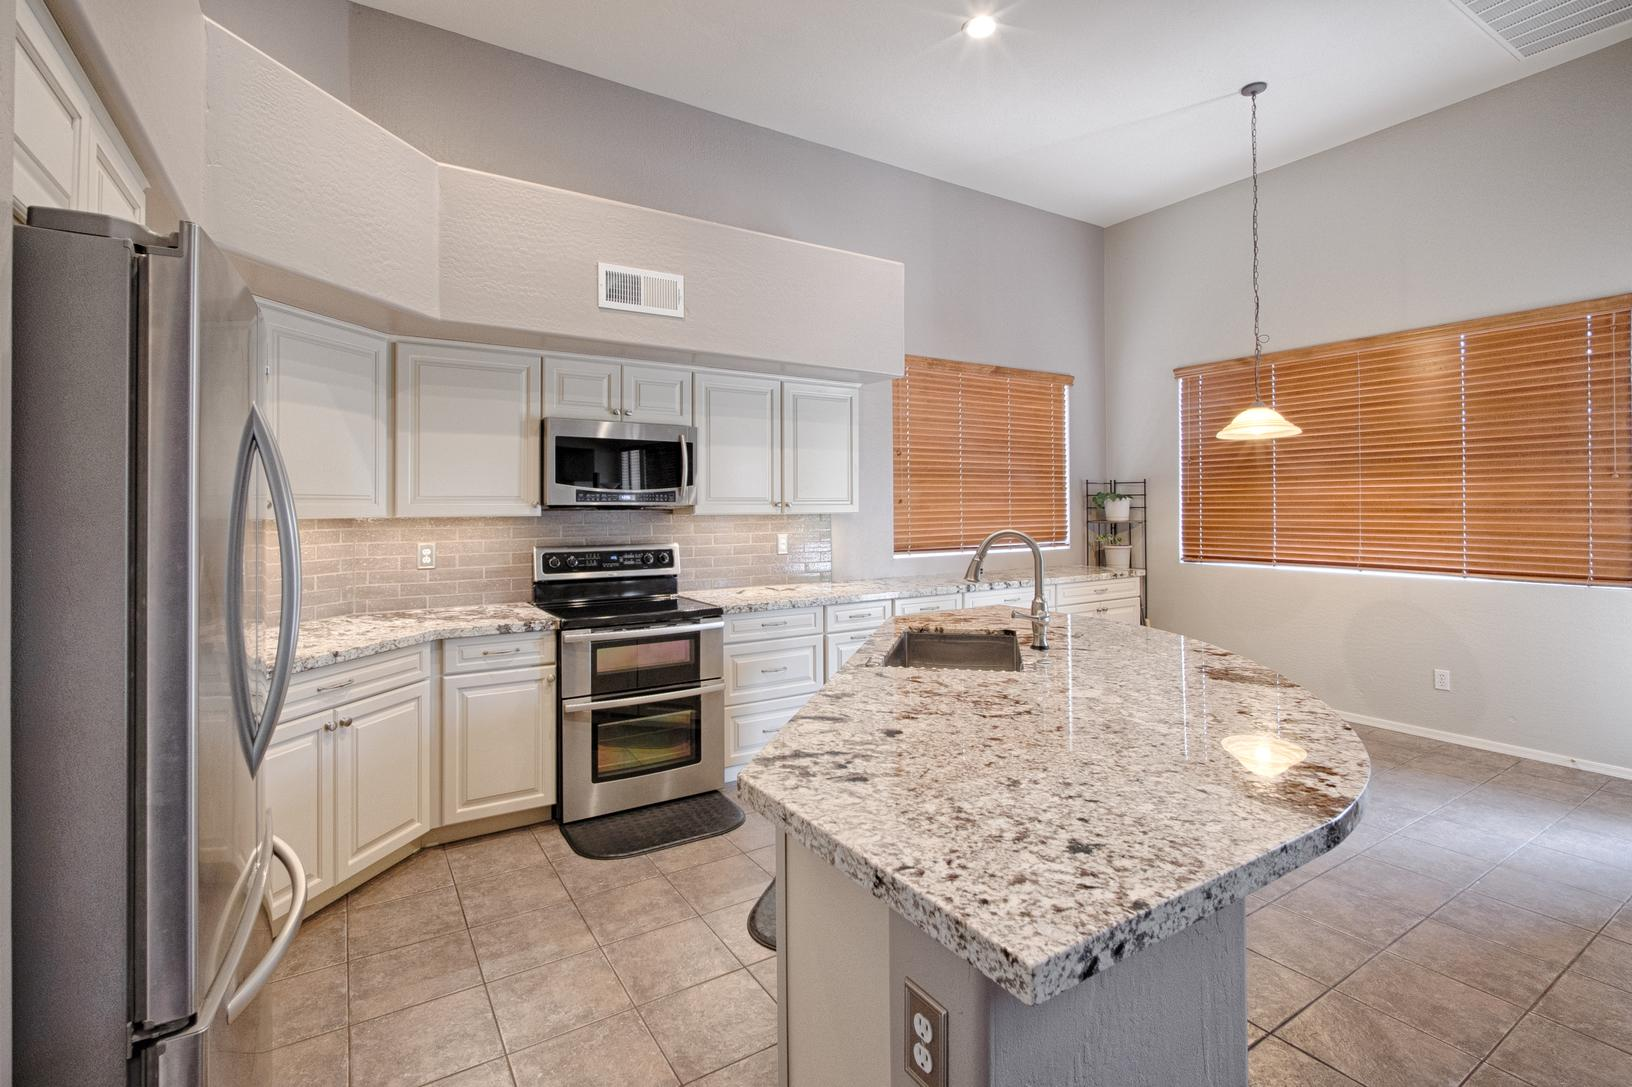 - Remodeling - Kitchen Remodel In Chandler - New Backsplash